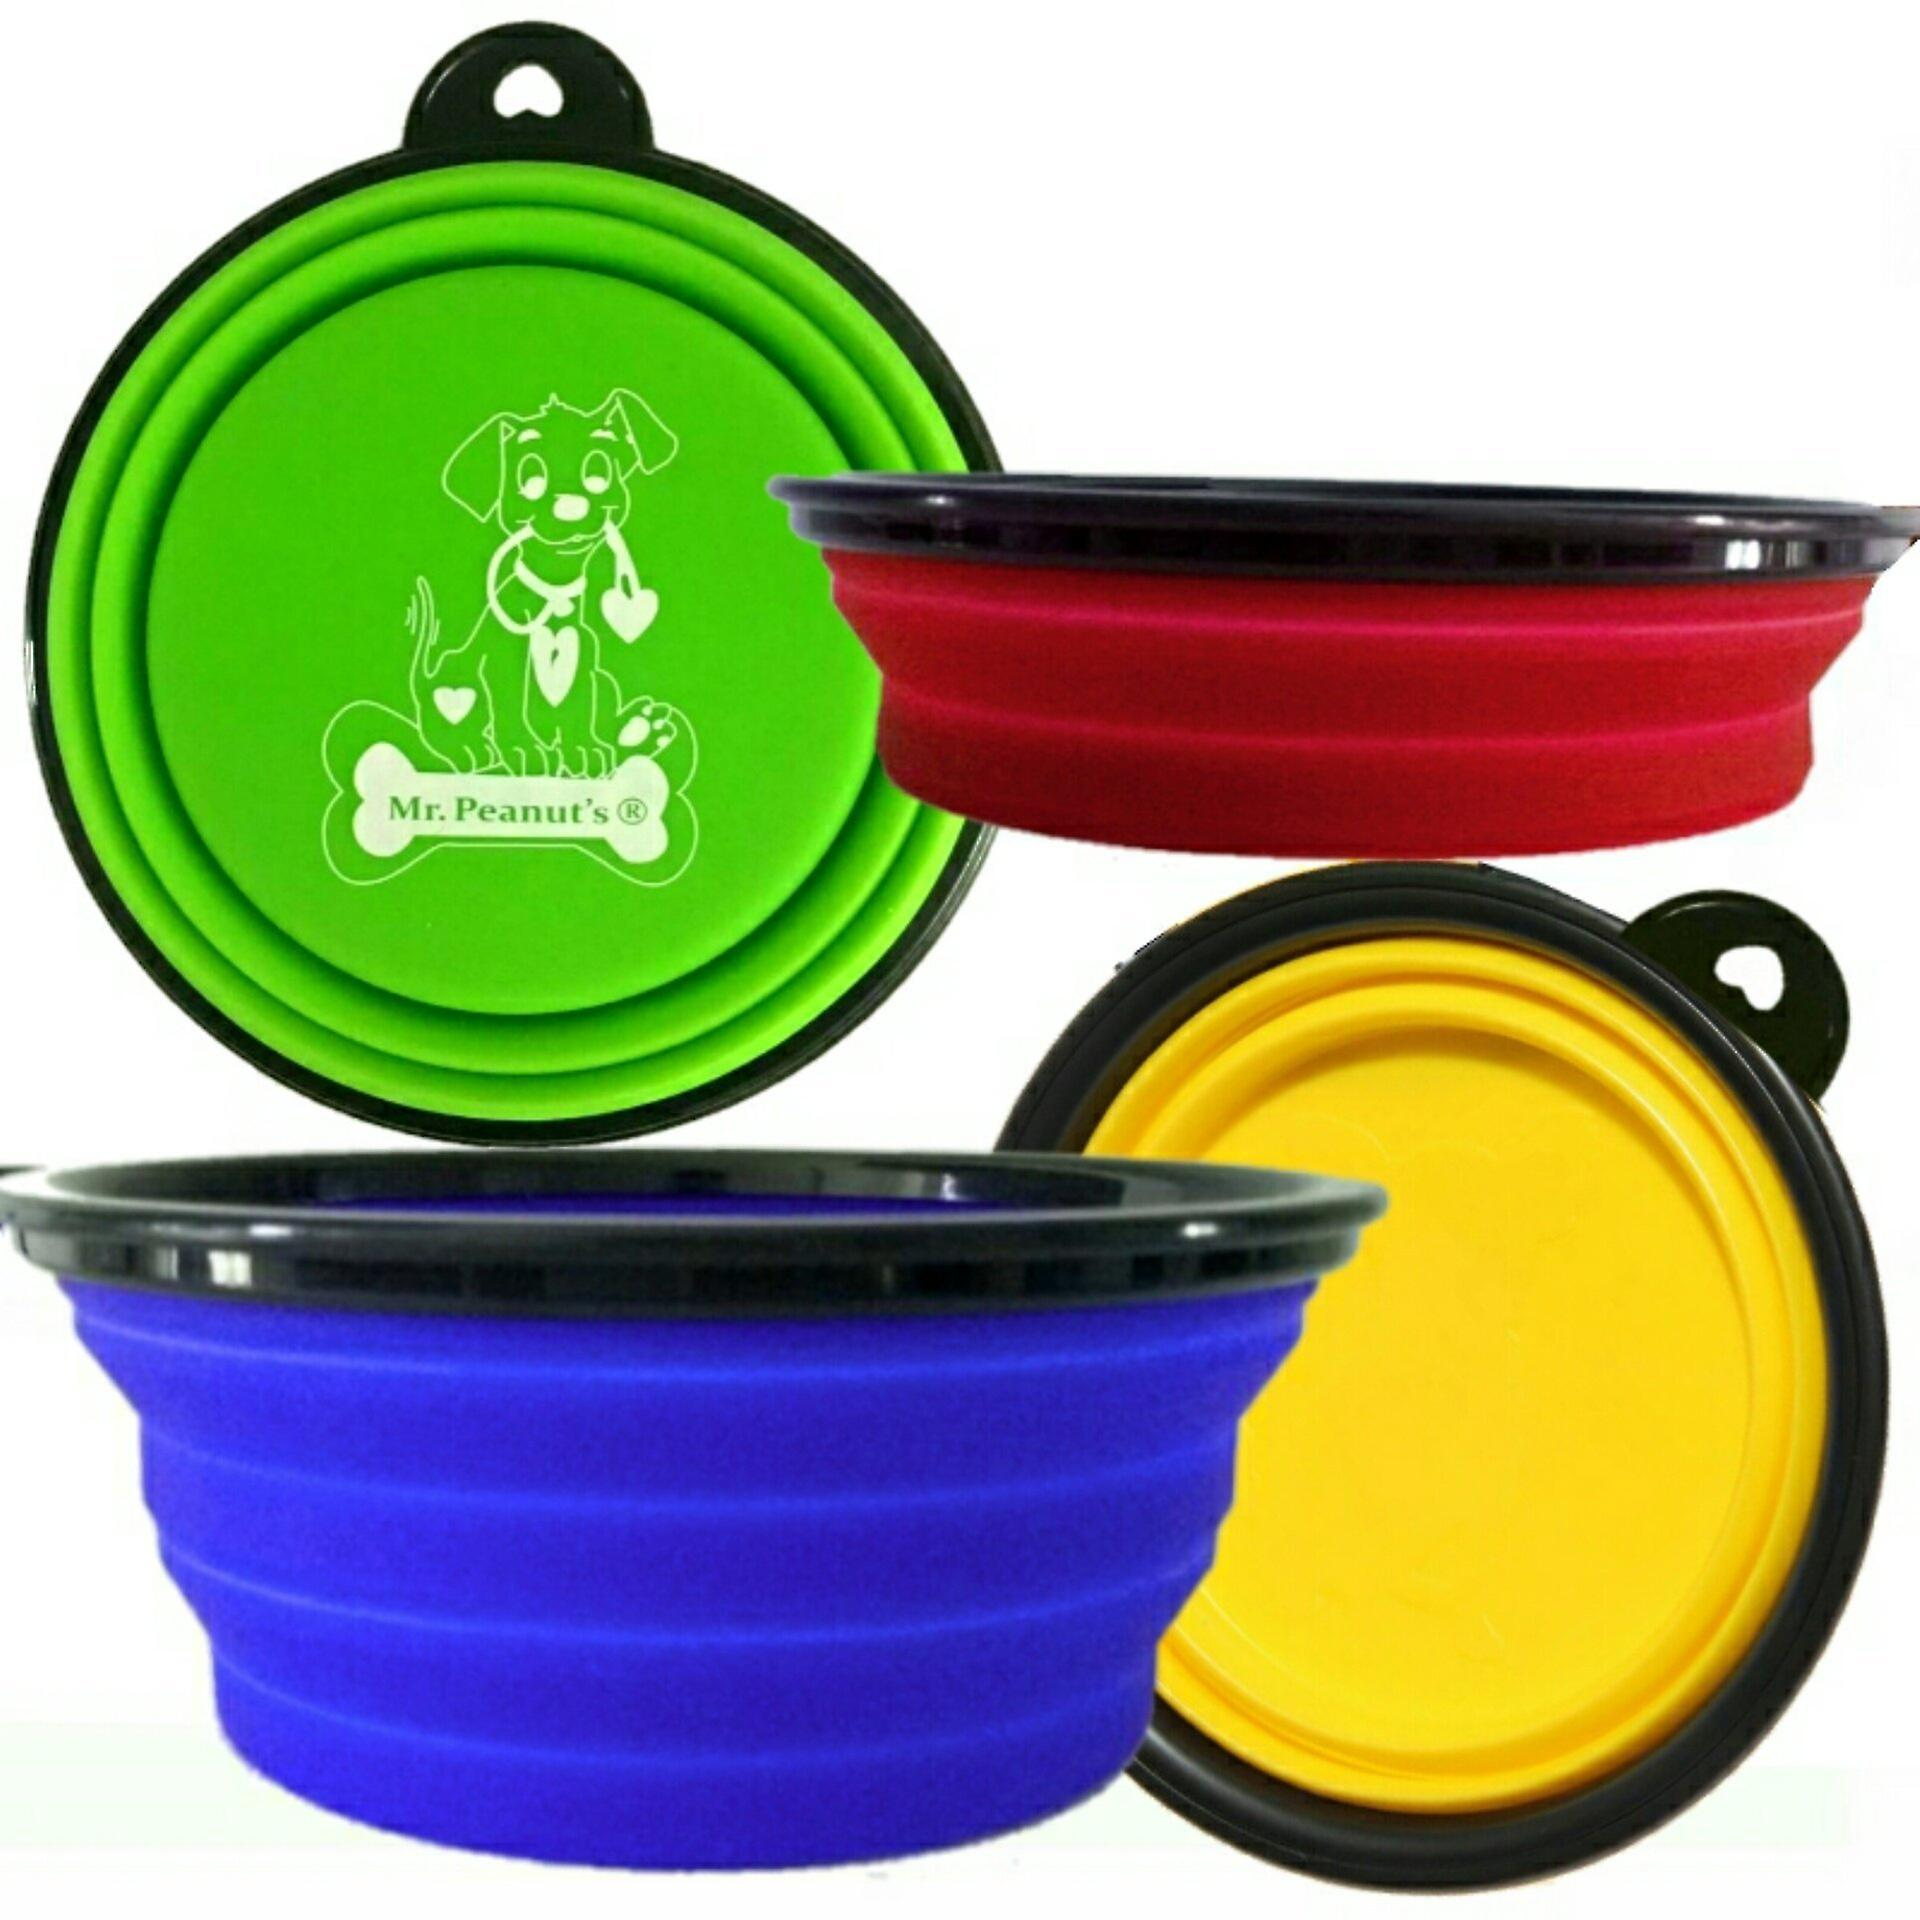 4 pak collapsible travel bowls for cats & dogs